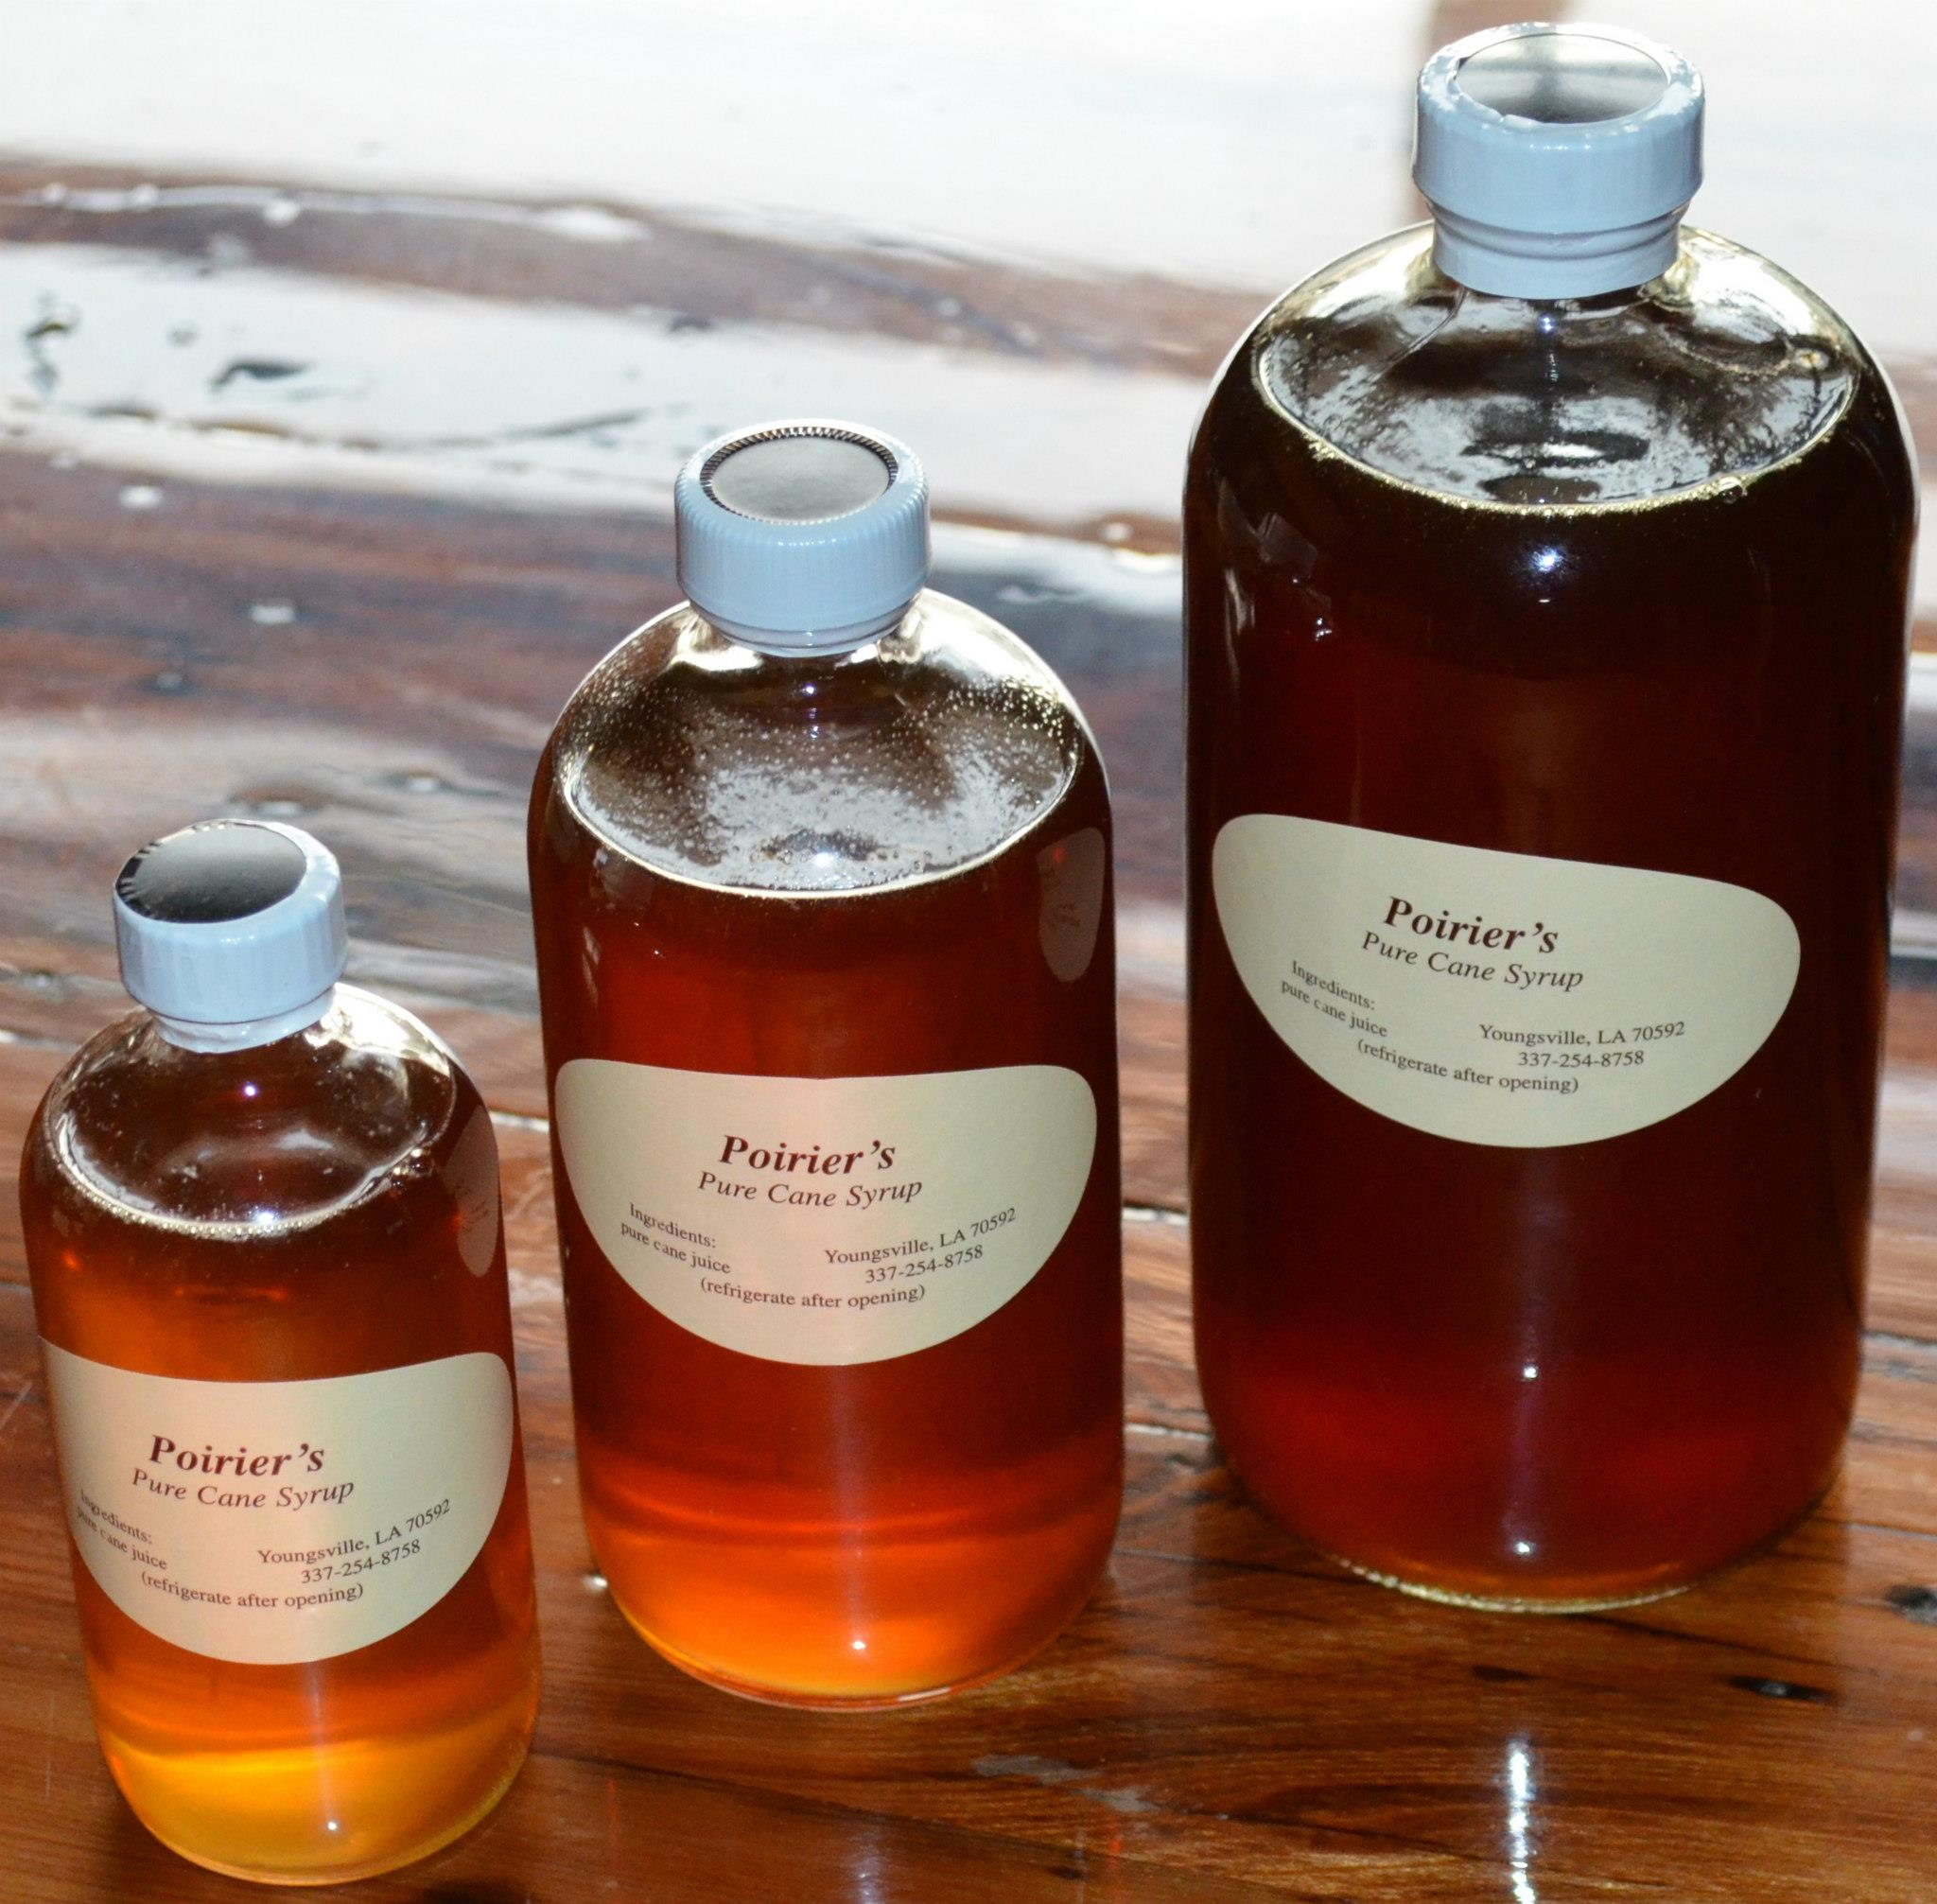 Poirier's cane syrup. (Photo via Poirier's on Facebook)